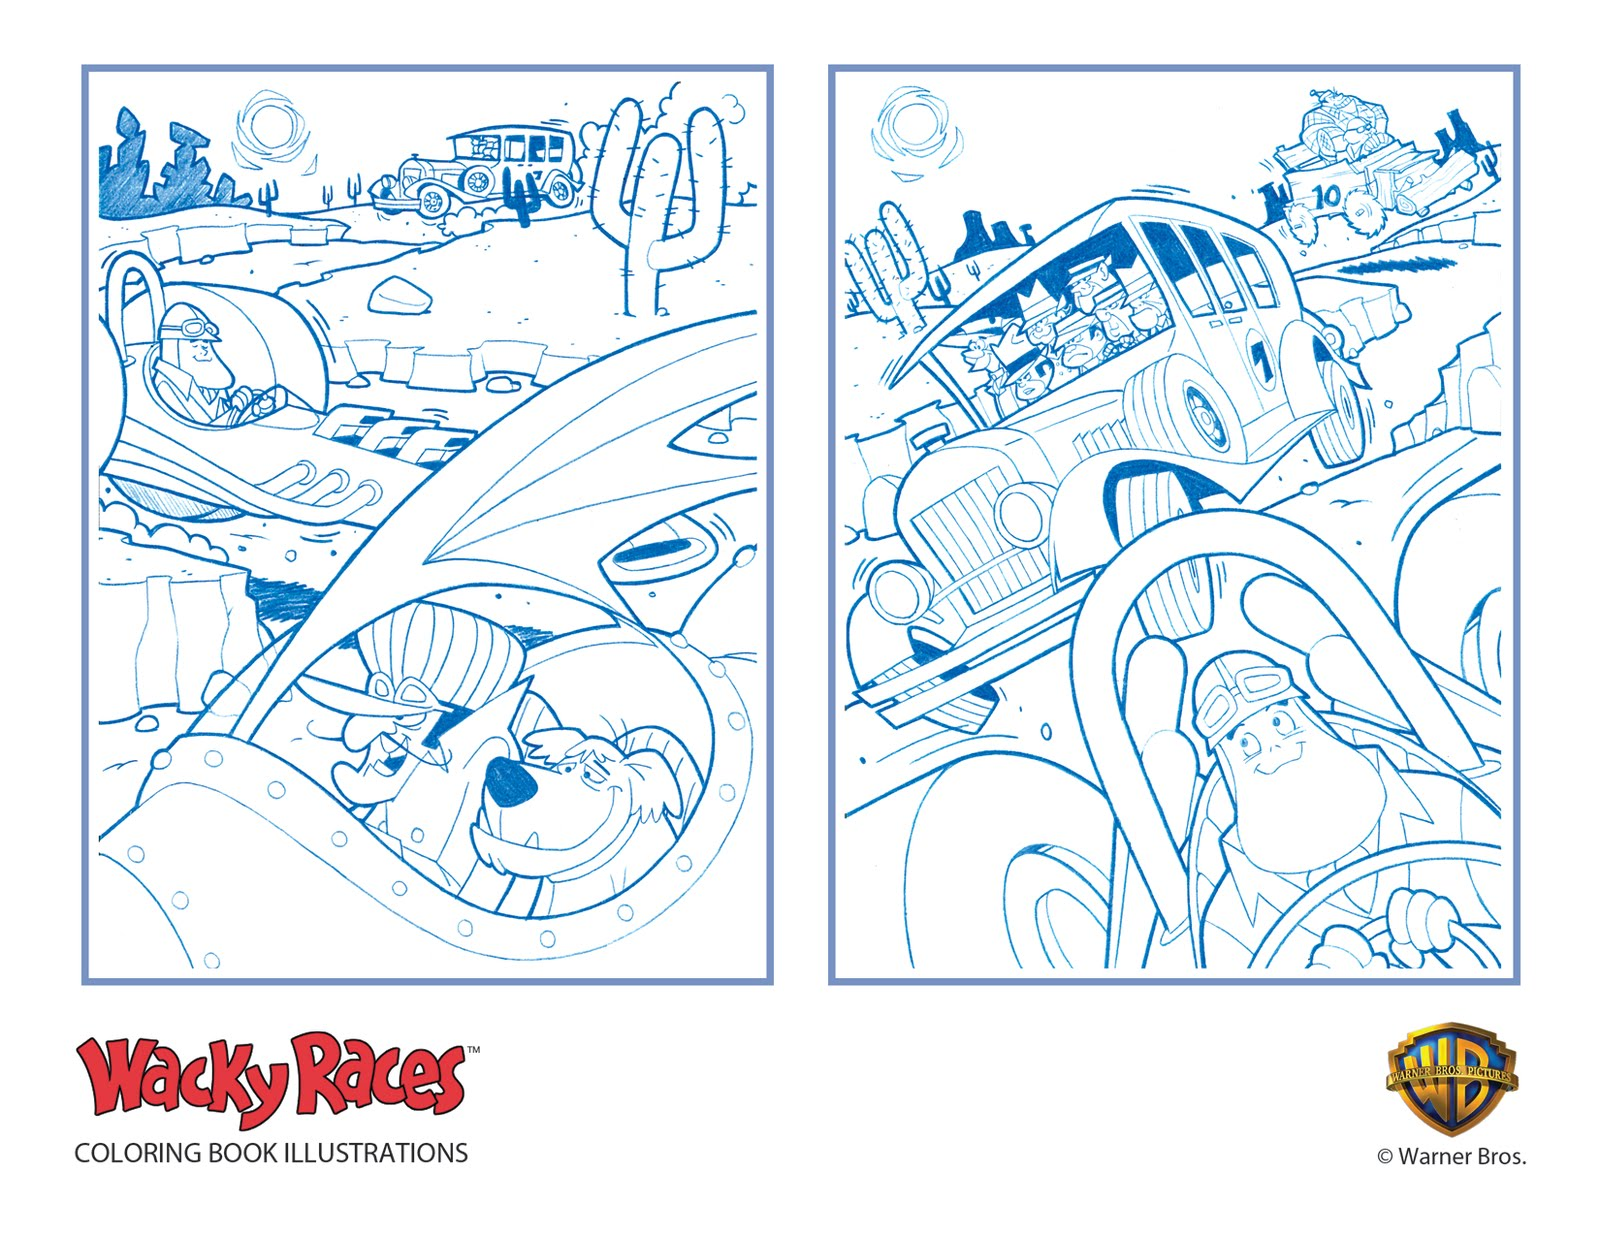 wacky races coloring pages - photo #25